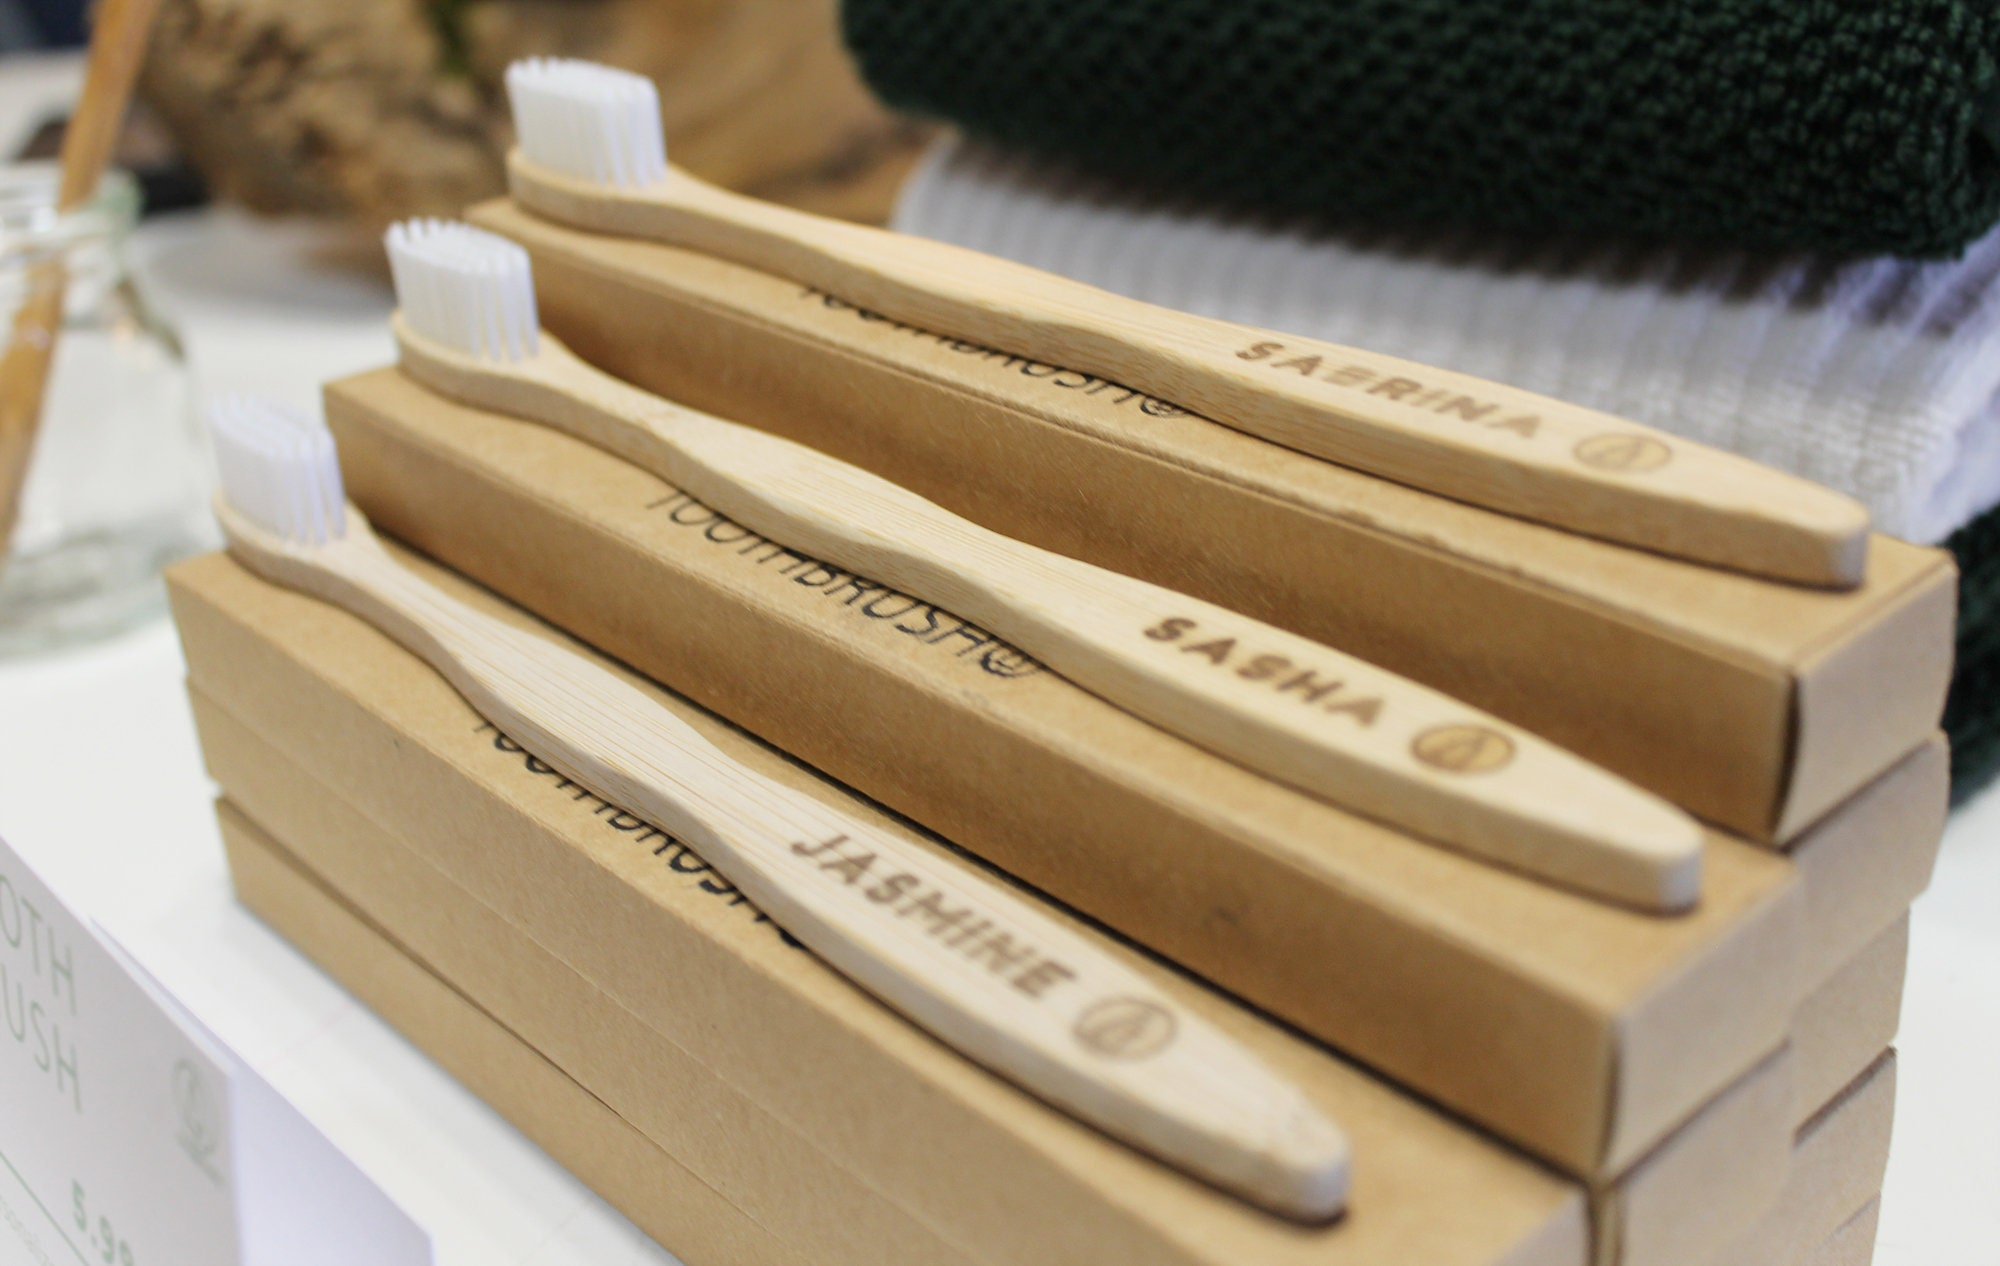 Personalized Bamboo Toothbrush Free Shipping In Canada image 2